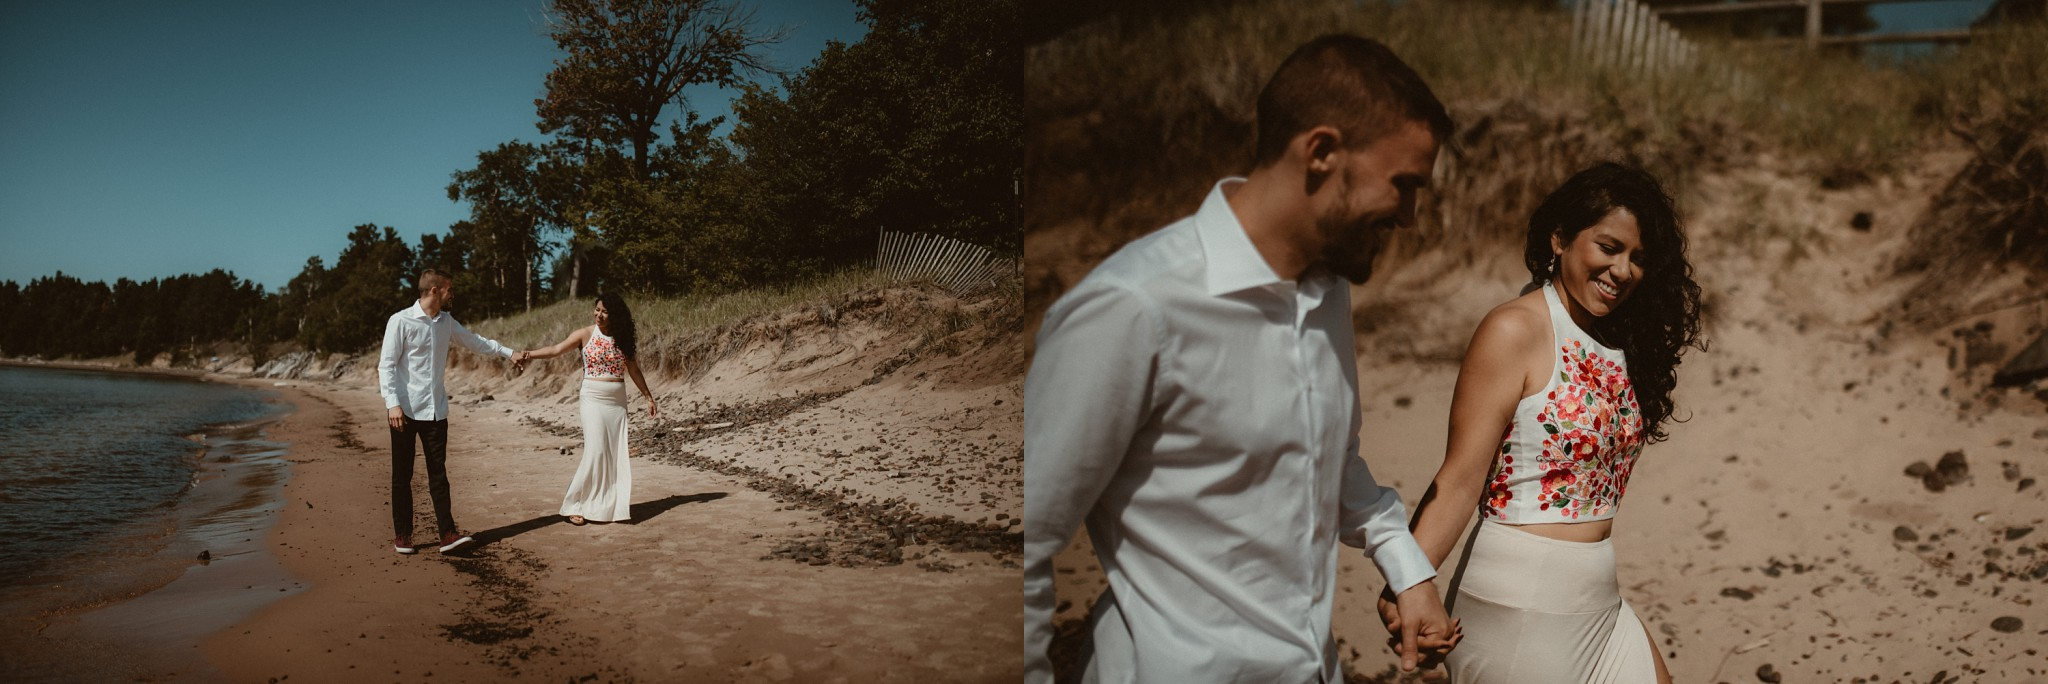 Wedding day couples photos in Michigan's Upper Peninsula